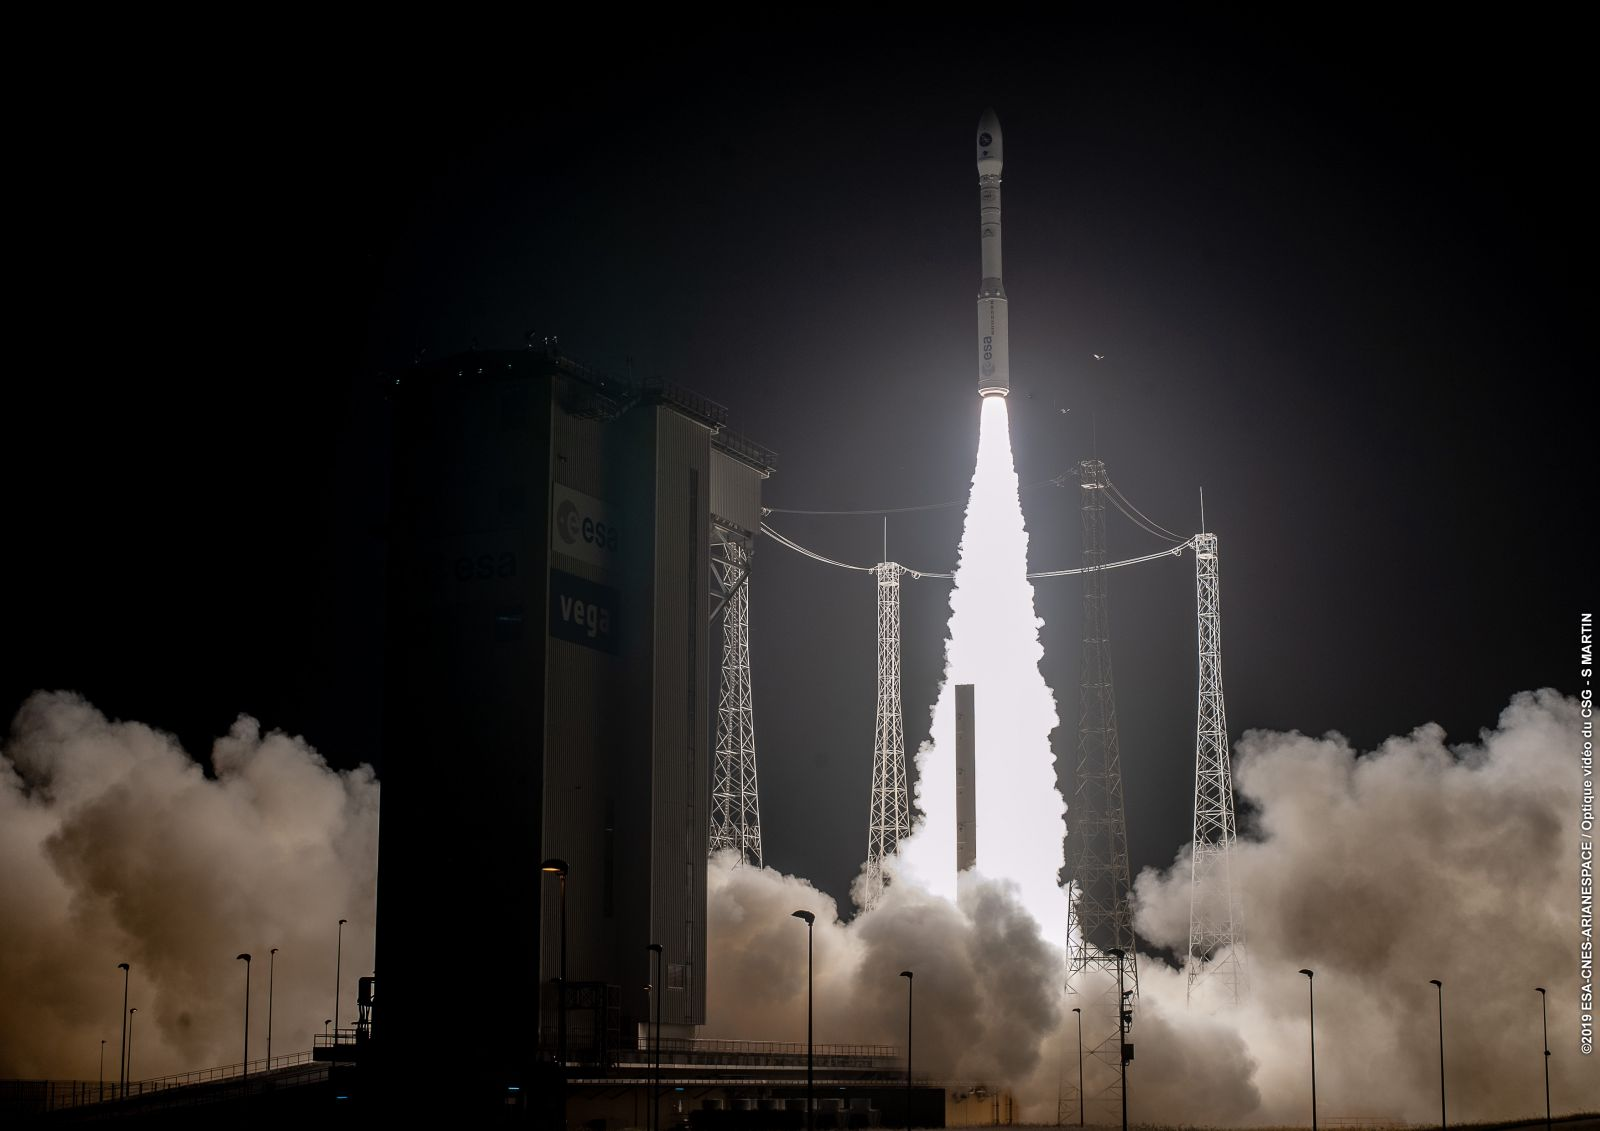 Arianespace's 14th Vega rocket launches PRISMA into space from the spaceport in French Guiana. Photo Credit: Arianespace